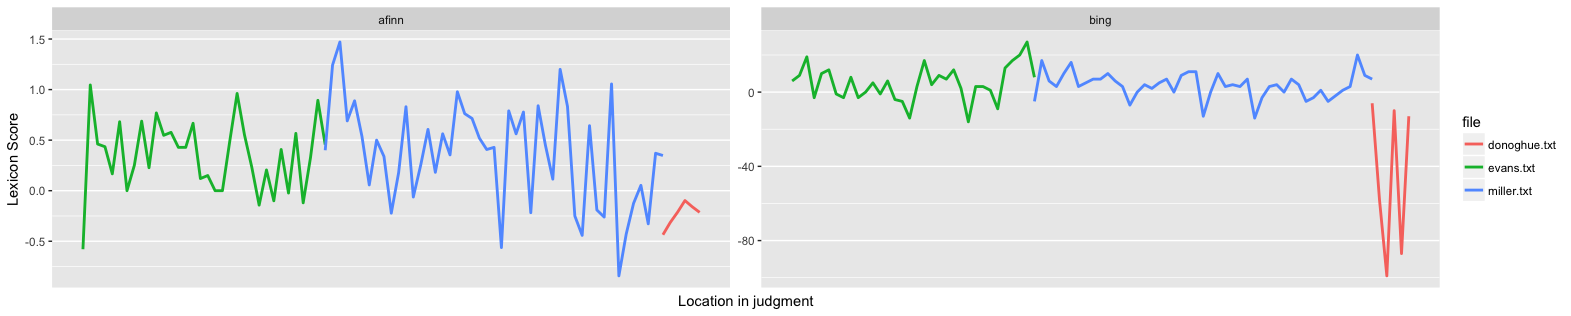 Analysis using the afinn and Bing sentiment dictionaries